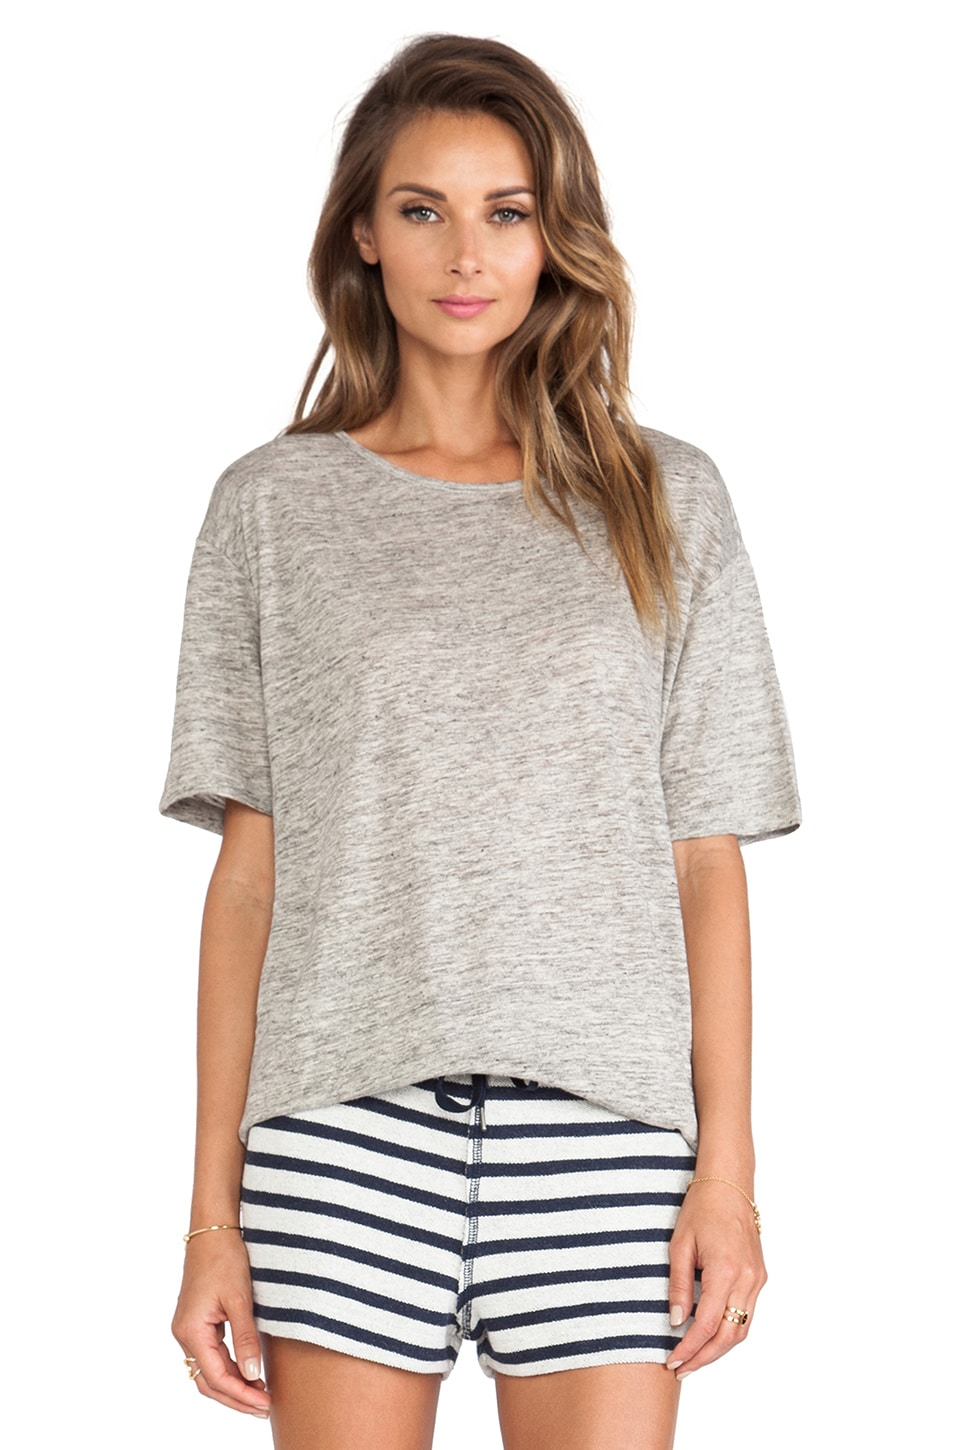 T by Alexander Wang Heather Oversized Tee in Light Heather Grey